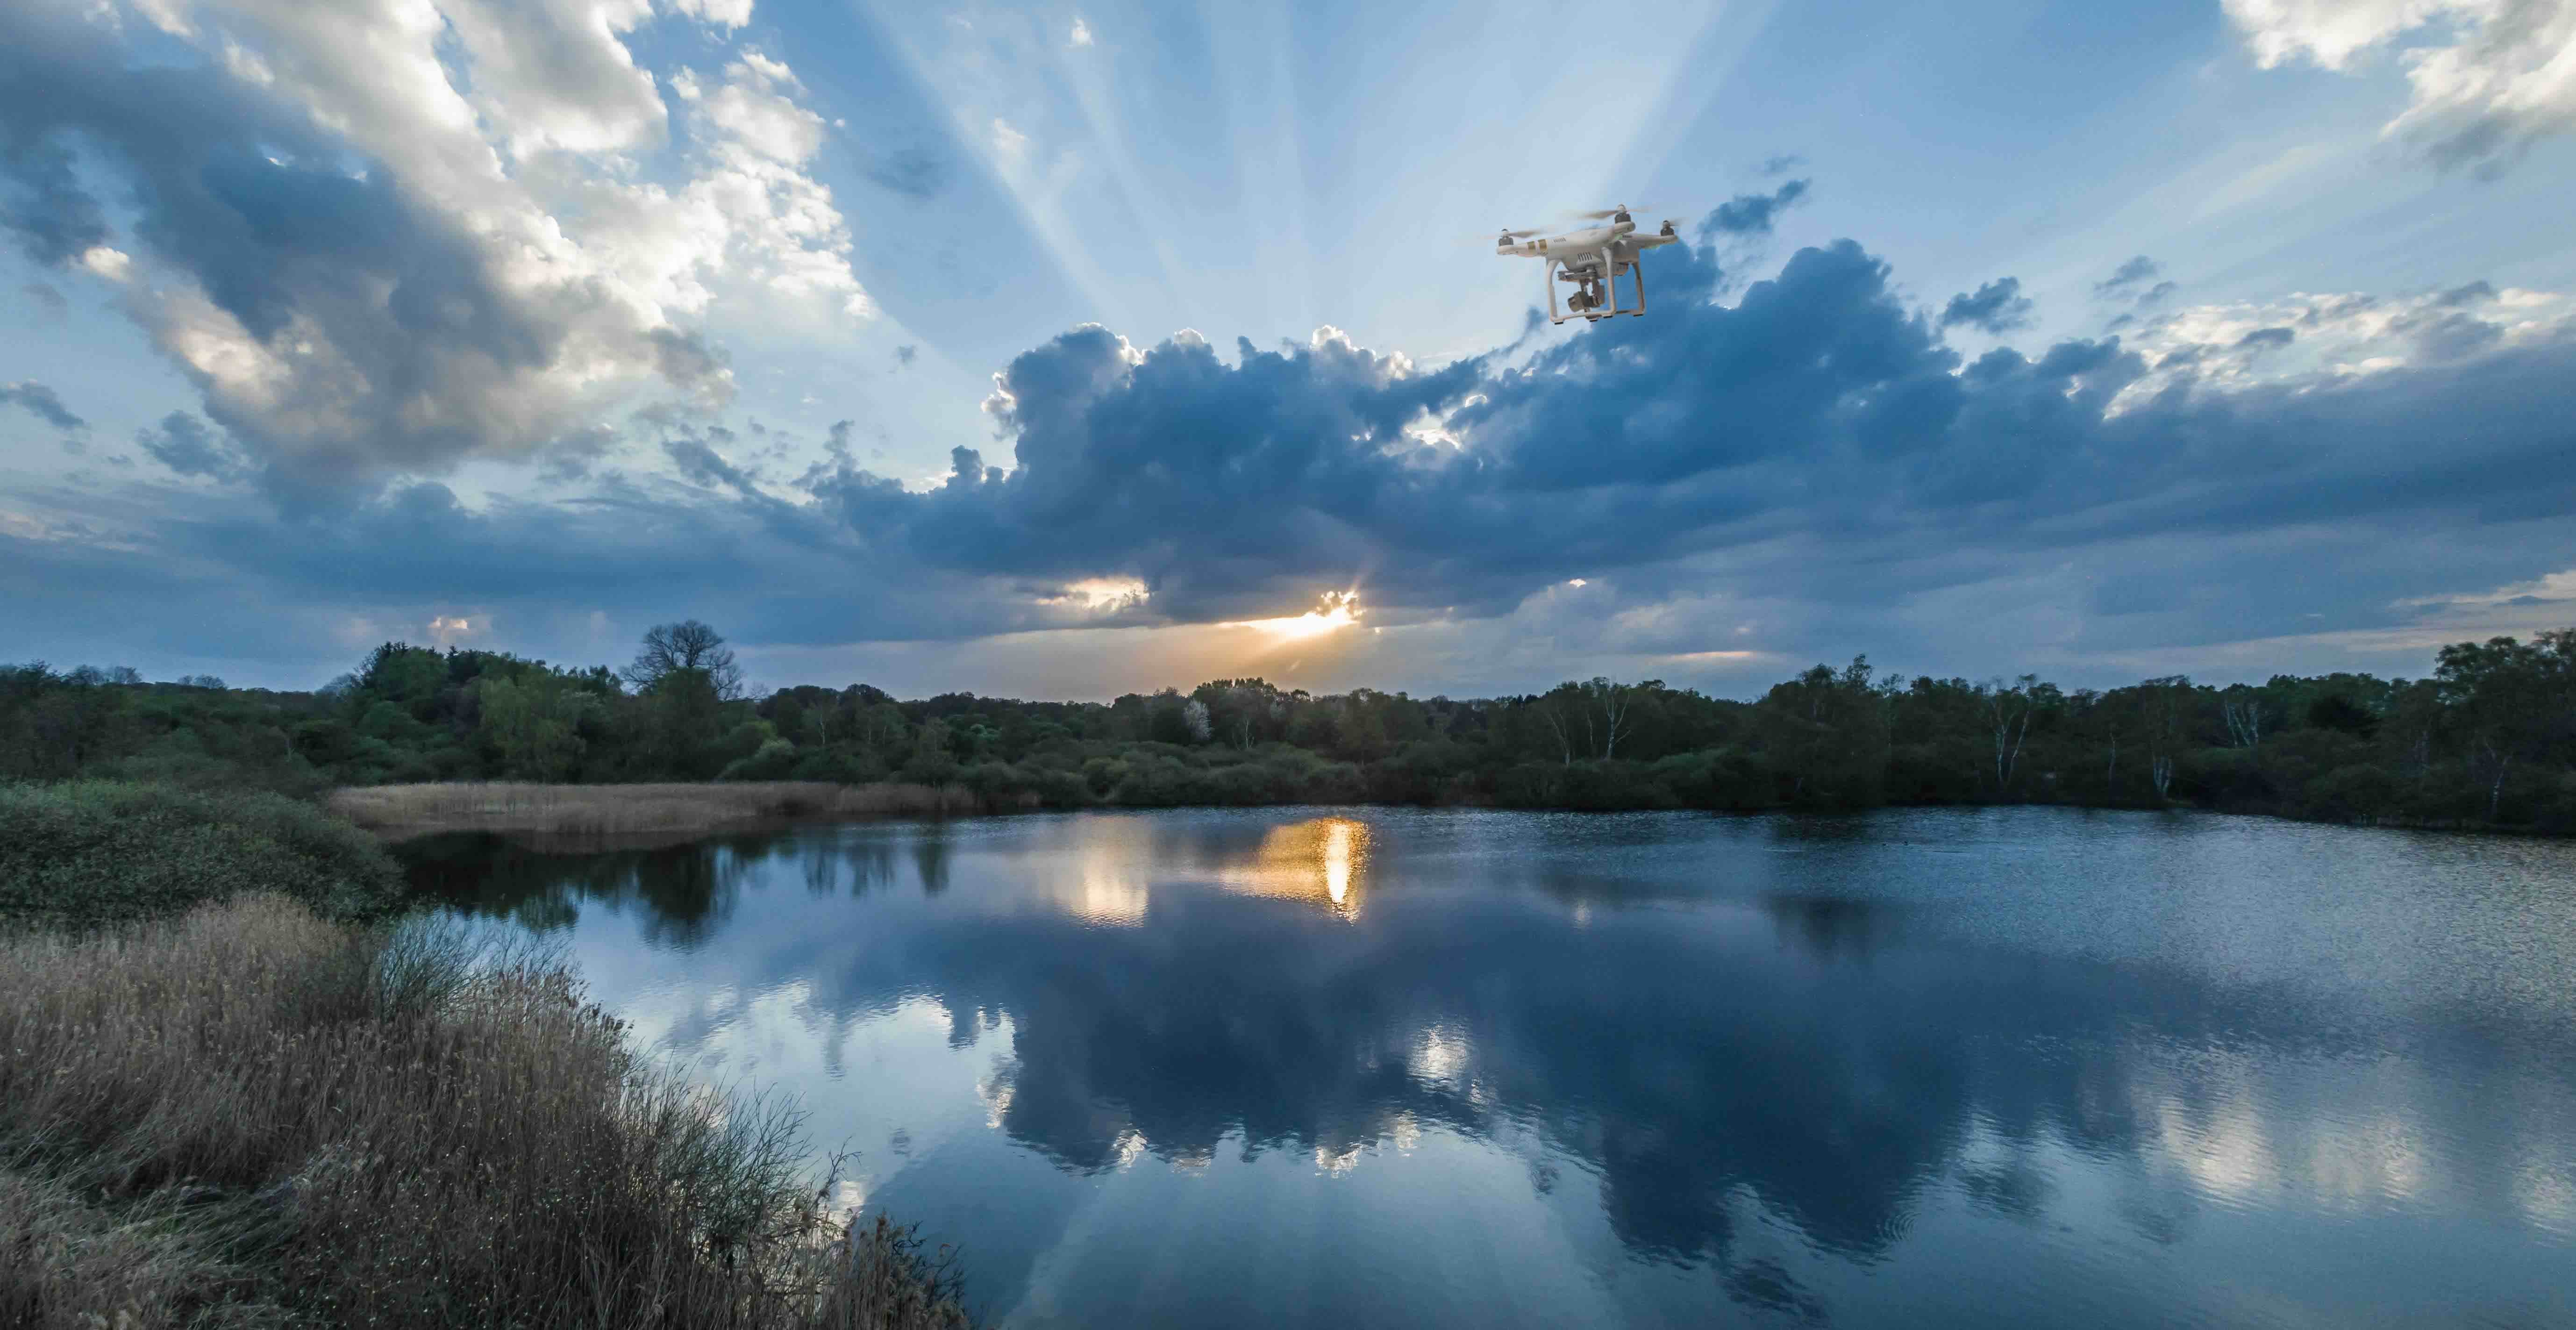 dji phantom buy online with Phantomfilters Bigcartel on Dronefishing furthermore phantomfilters bigcartel additionally Dronesforsale in addition Eachine Racer 250 Fpv Drone together with Zenmuse H3 3d.